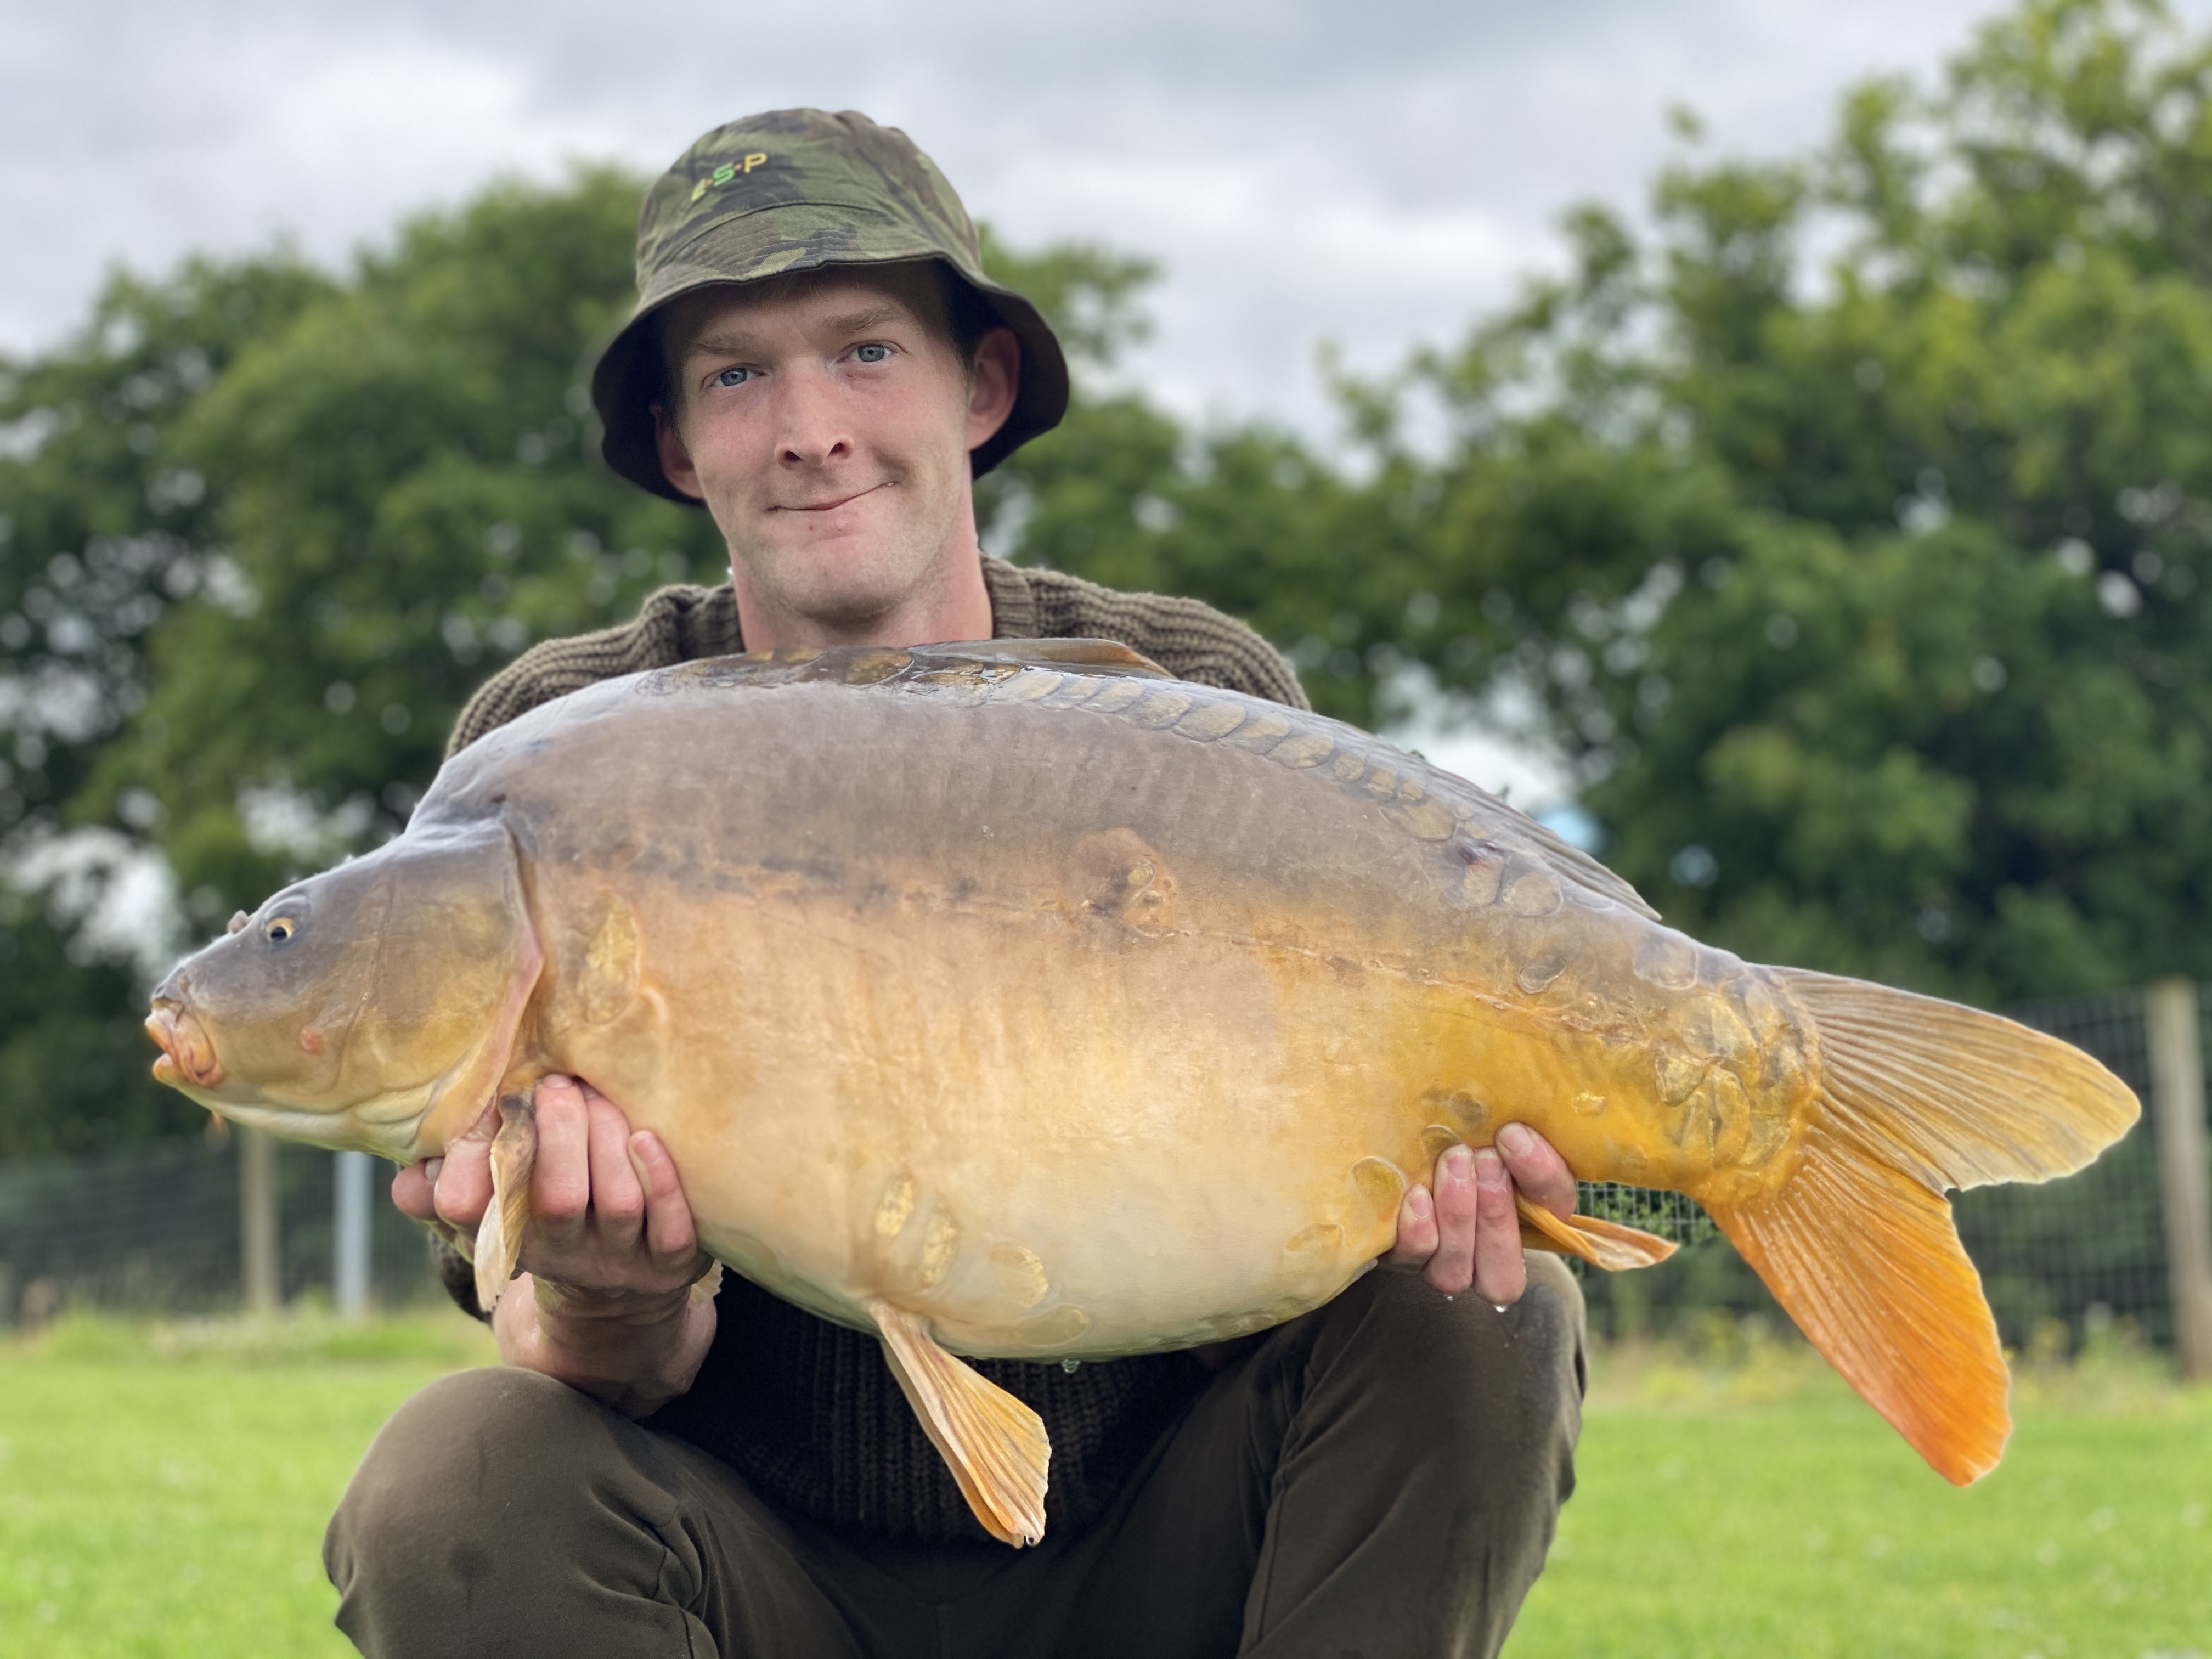 35lb 08oz  caught on